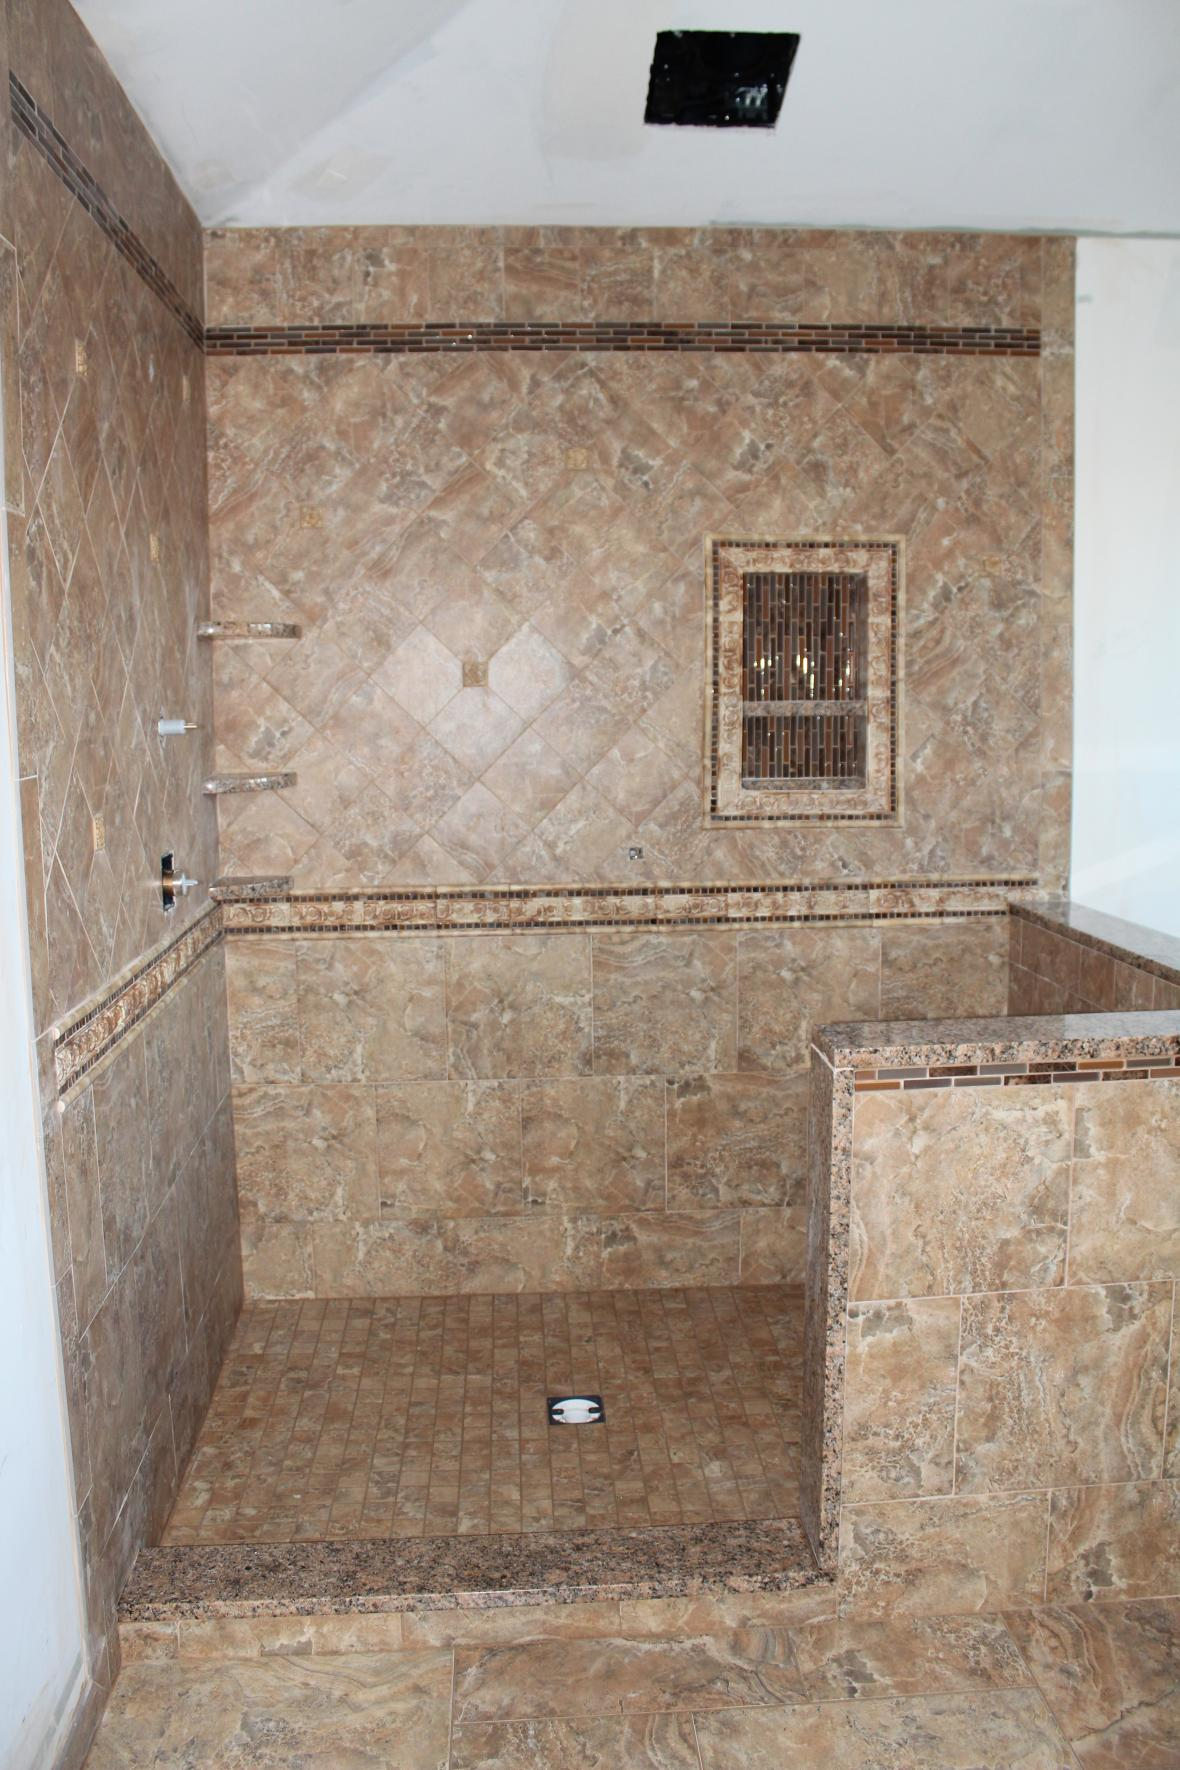 25 wonderful ideas and pictures of decorative bathroom tile borders - Decorative bathroom tiles ...